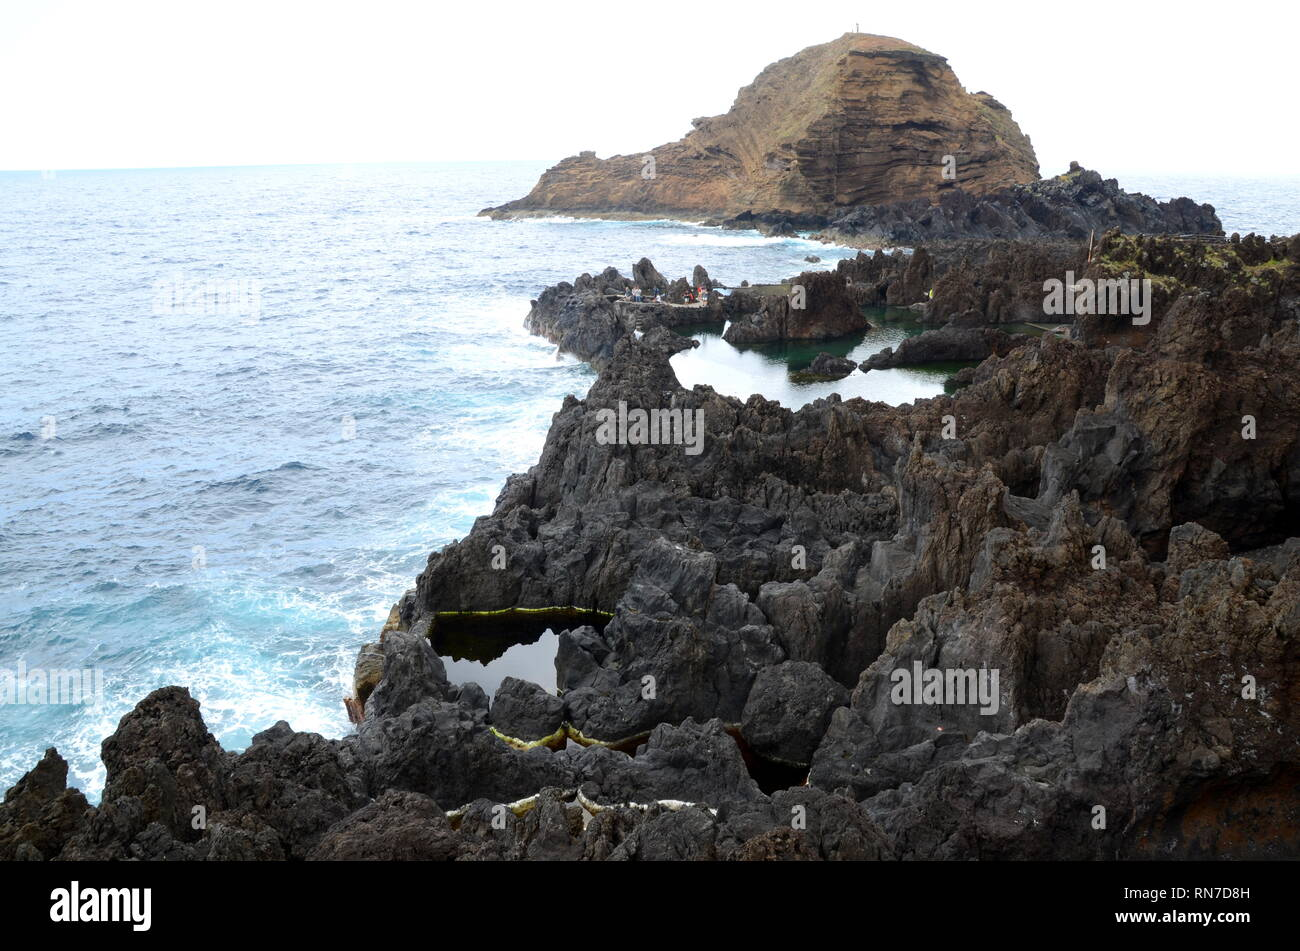 Natural swimming pools formed by volcanic rocks at Porto Moniz, Madeira - Stock Image